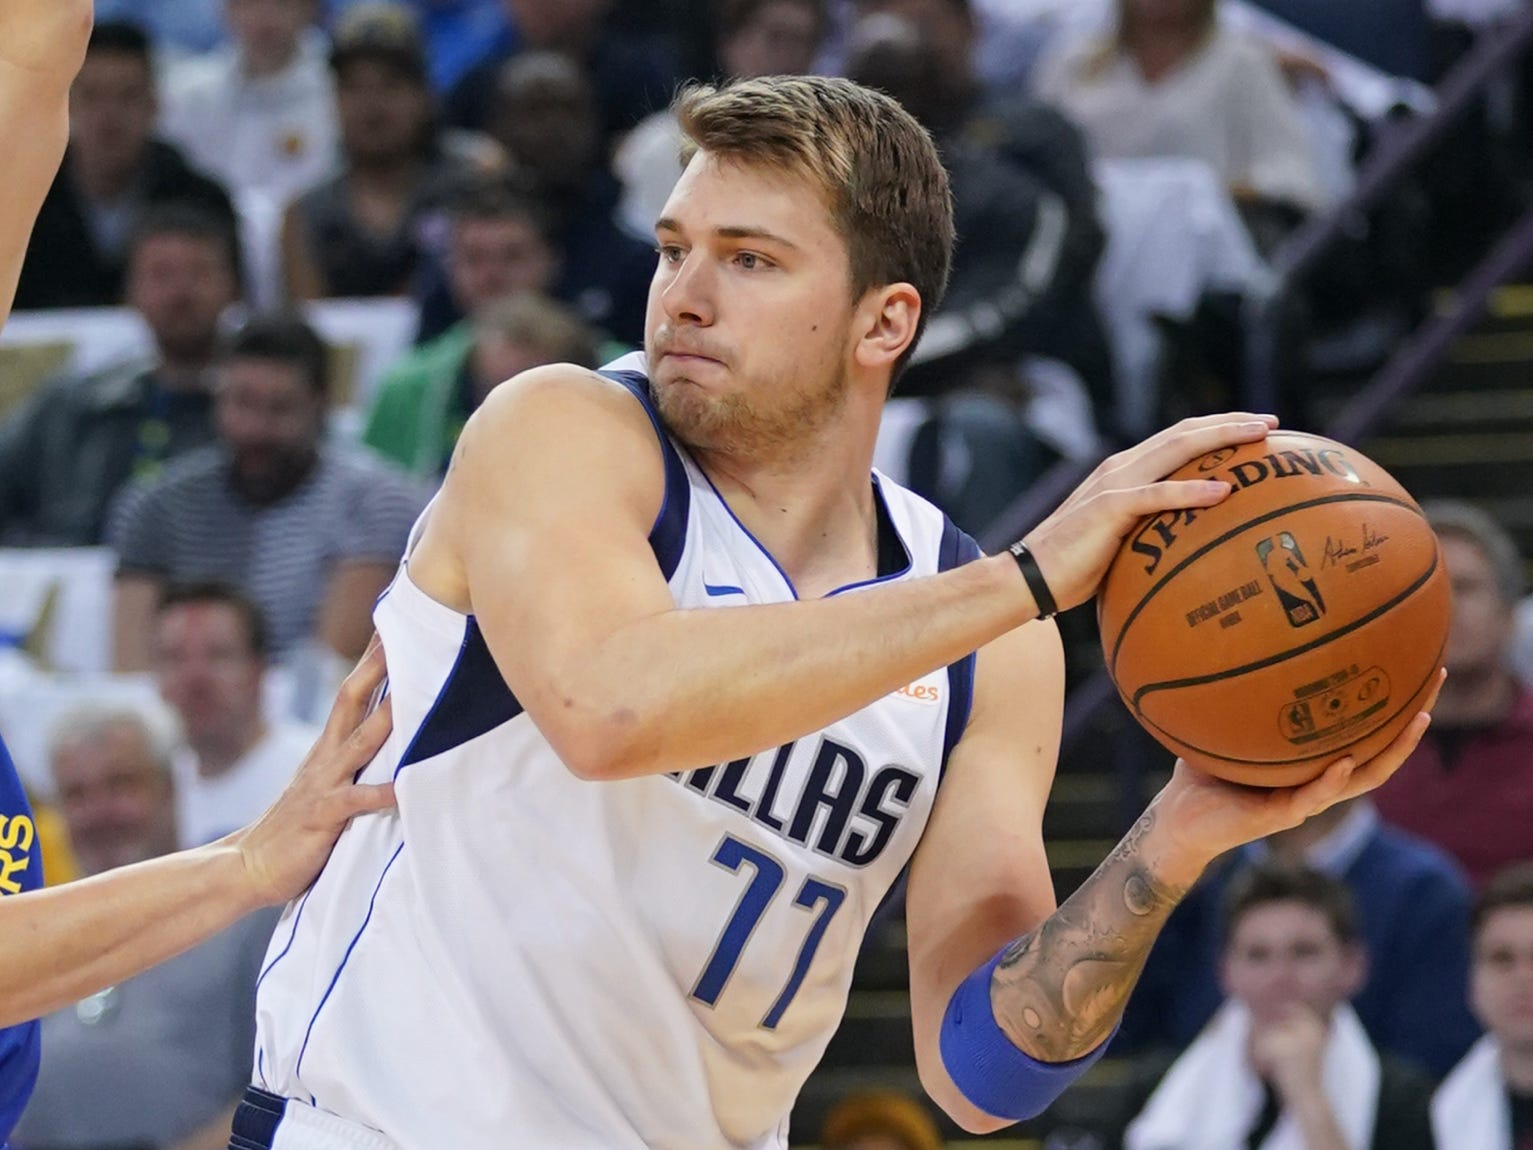 107. Luka Doncic, Mavericks (March 23): 23 points, 11 rebounds, 10 assists in 126-91 win over Warriors (sixth of season).